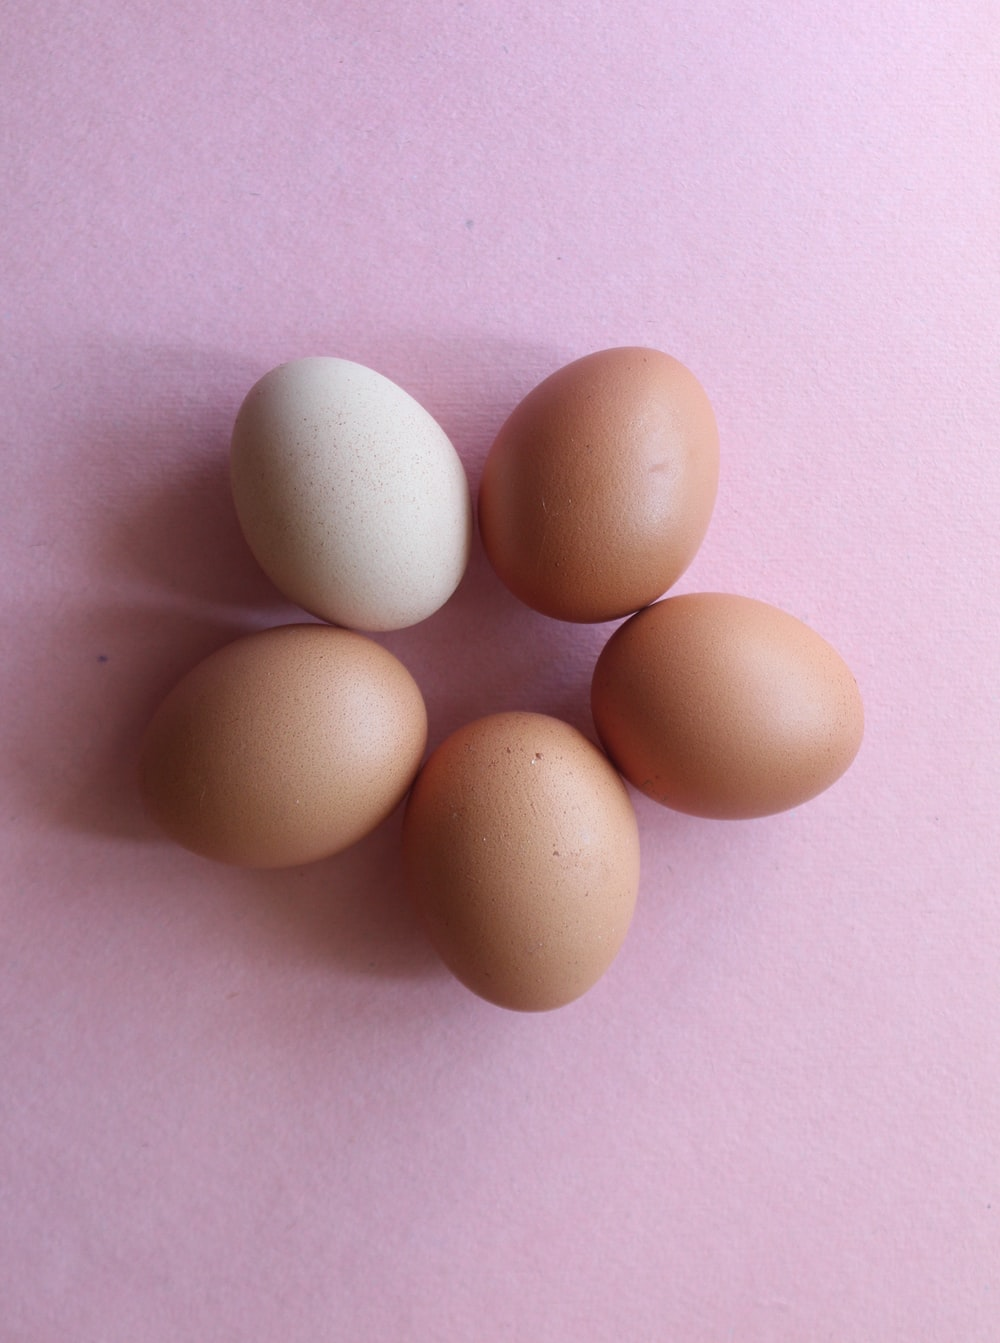 2 brown eggs on pink textile